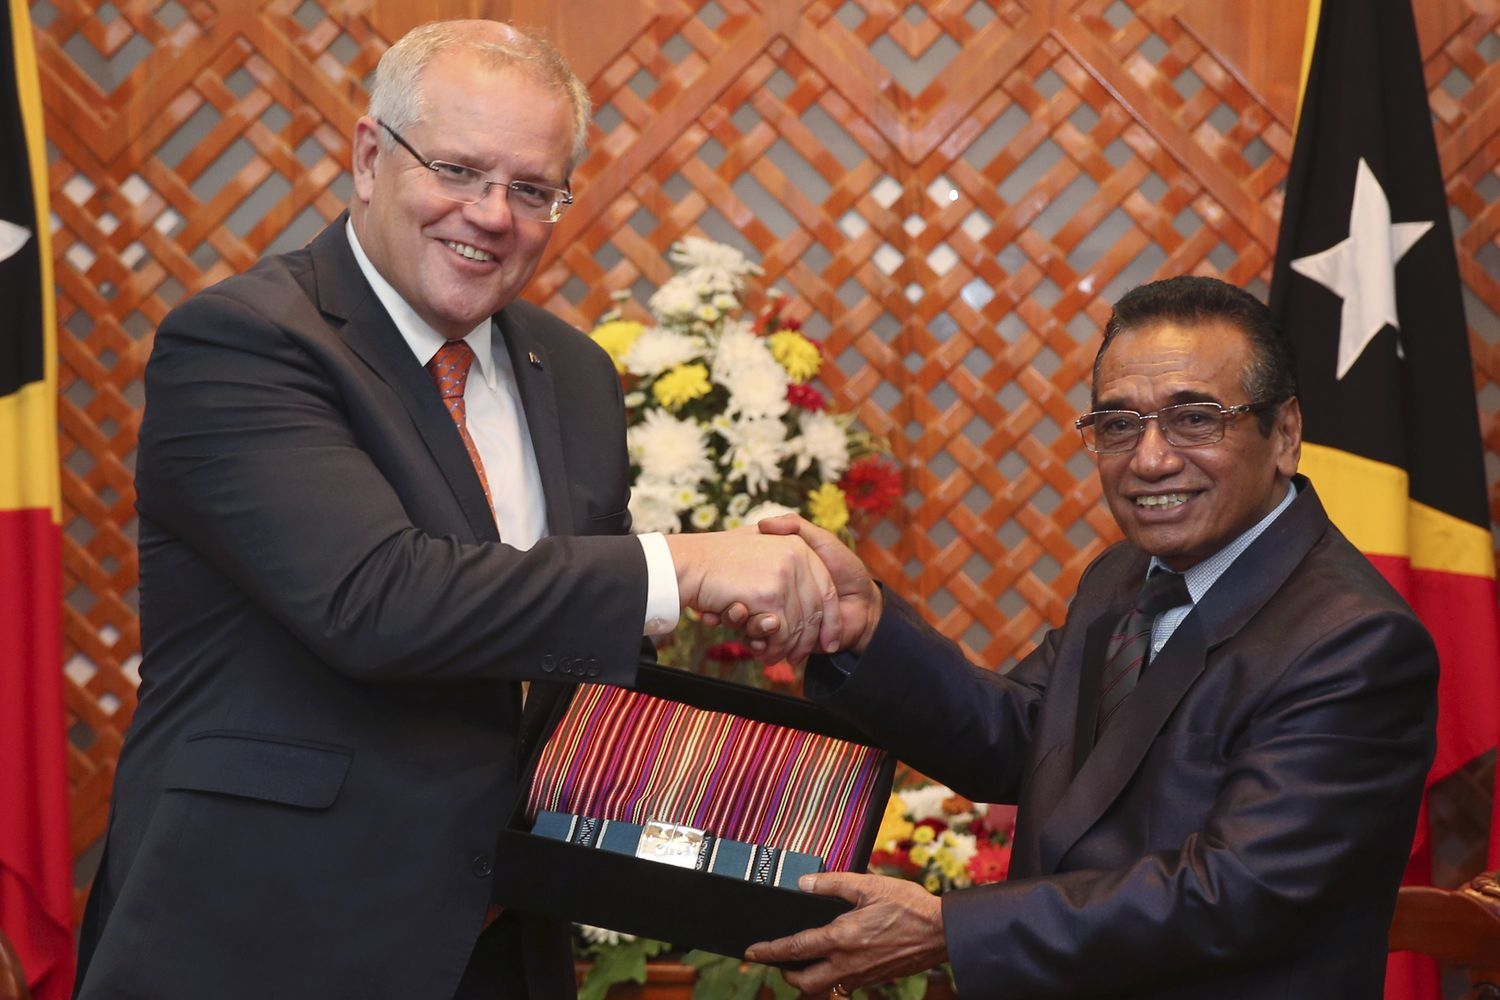 Australian Prime Minister Scott Morrison (left) receives a souvenir of traditional Timorese woven cloths called 'tais' from East Timorese President Francisco Guterres during their meeting in Dili, East Timor, on Friday. (AP photo)